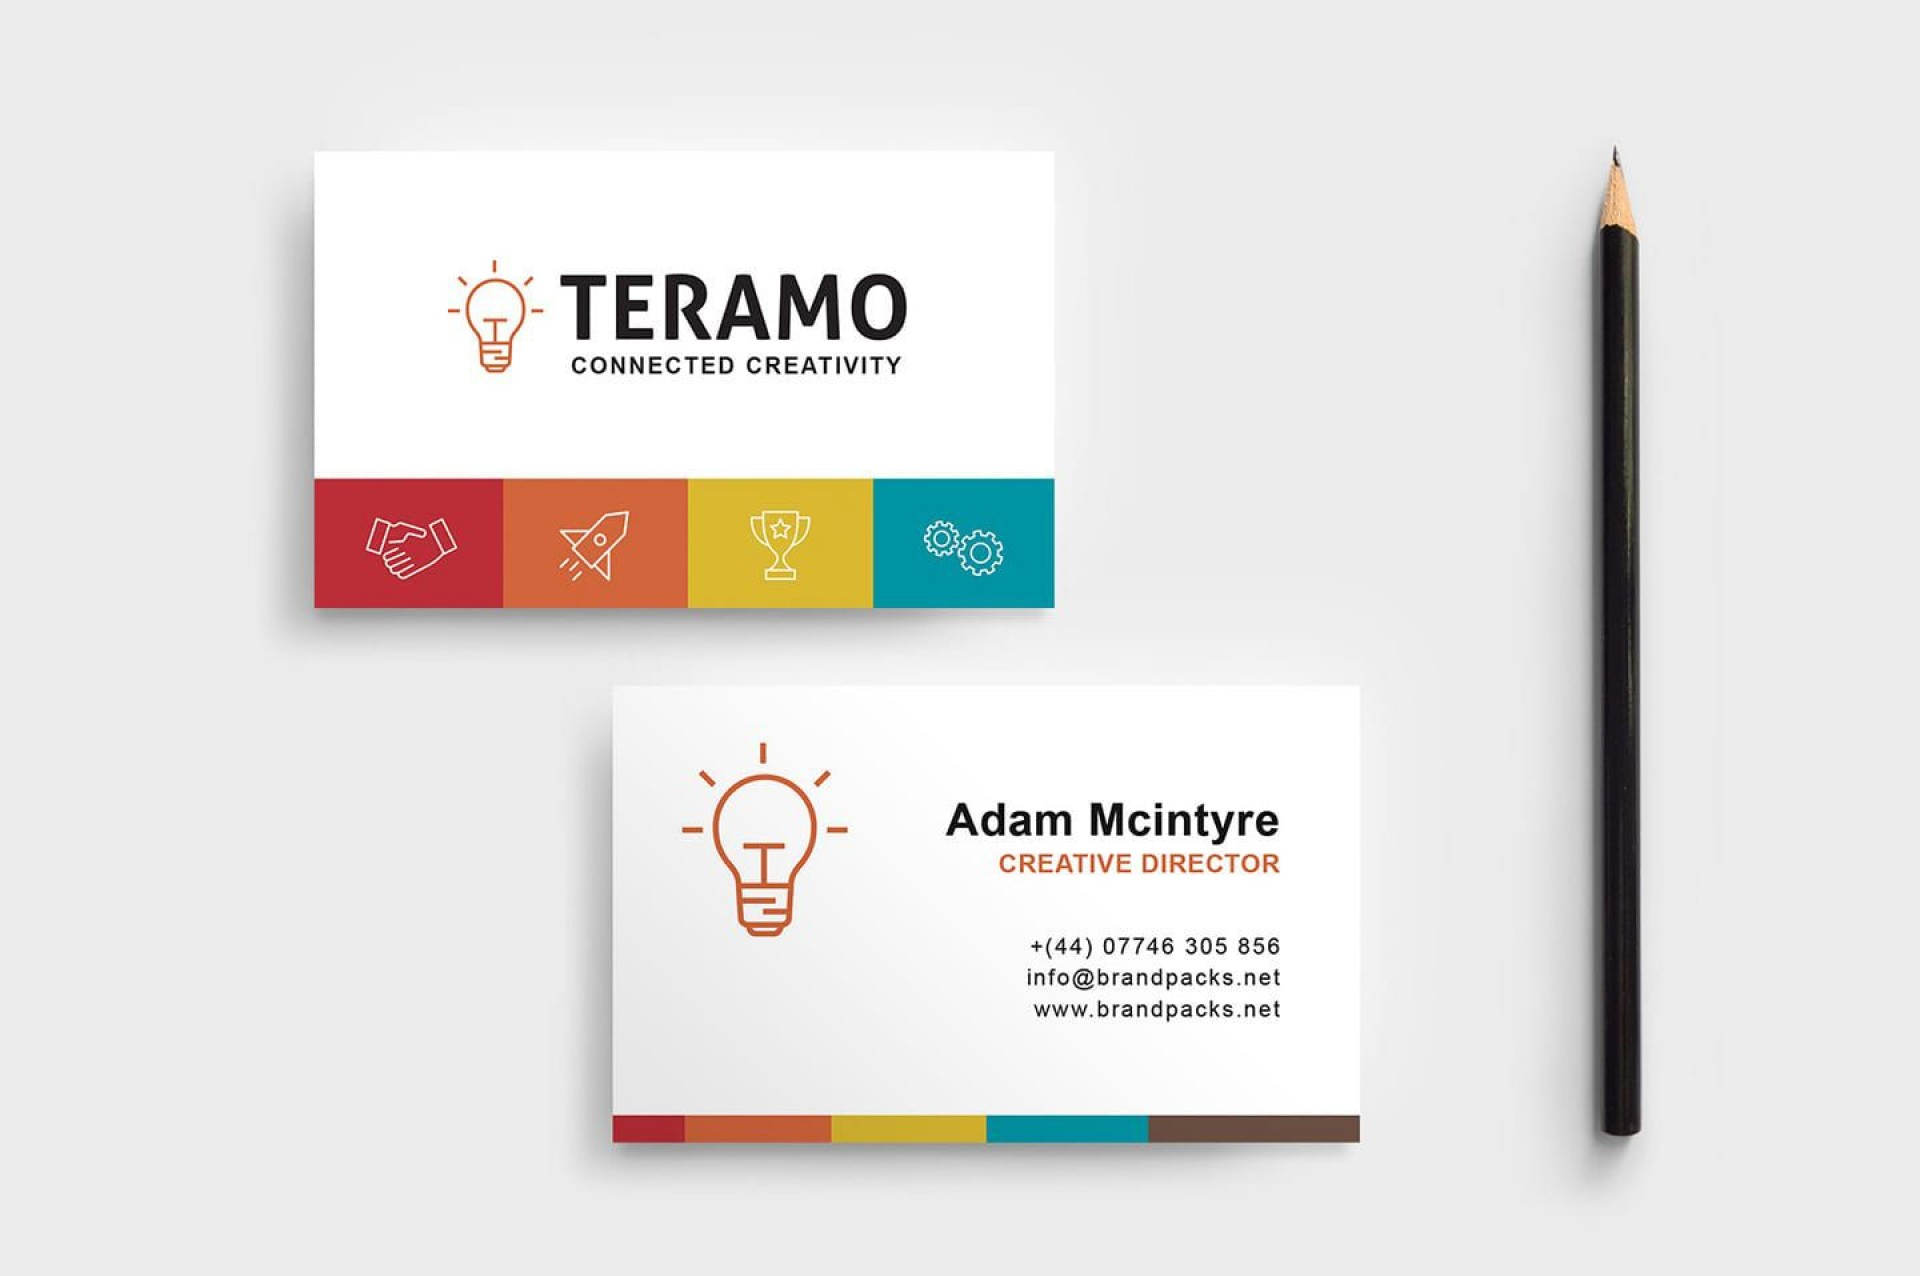 009 Top Blank Busines Card Template Psd Free Download Design  Photoshop1920